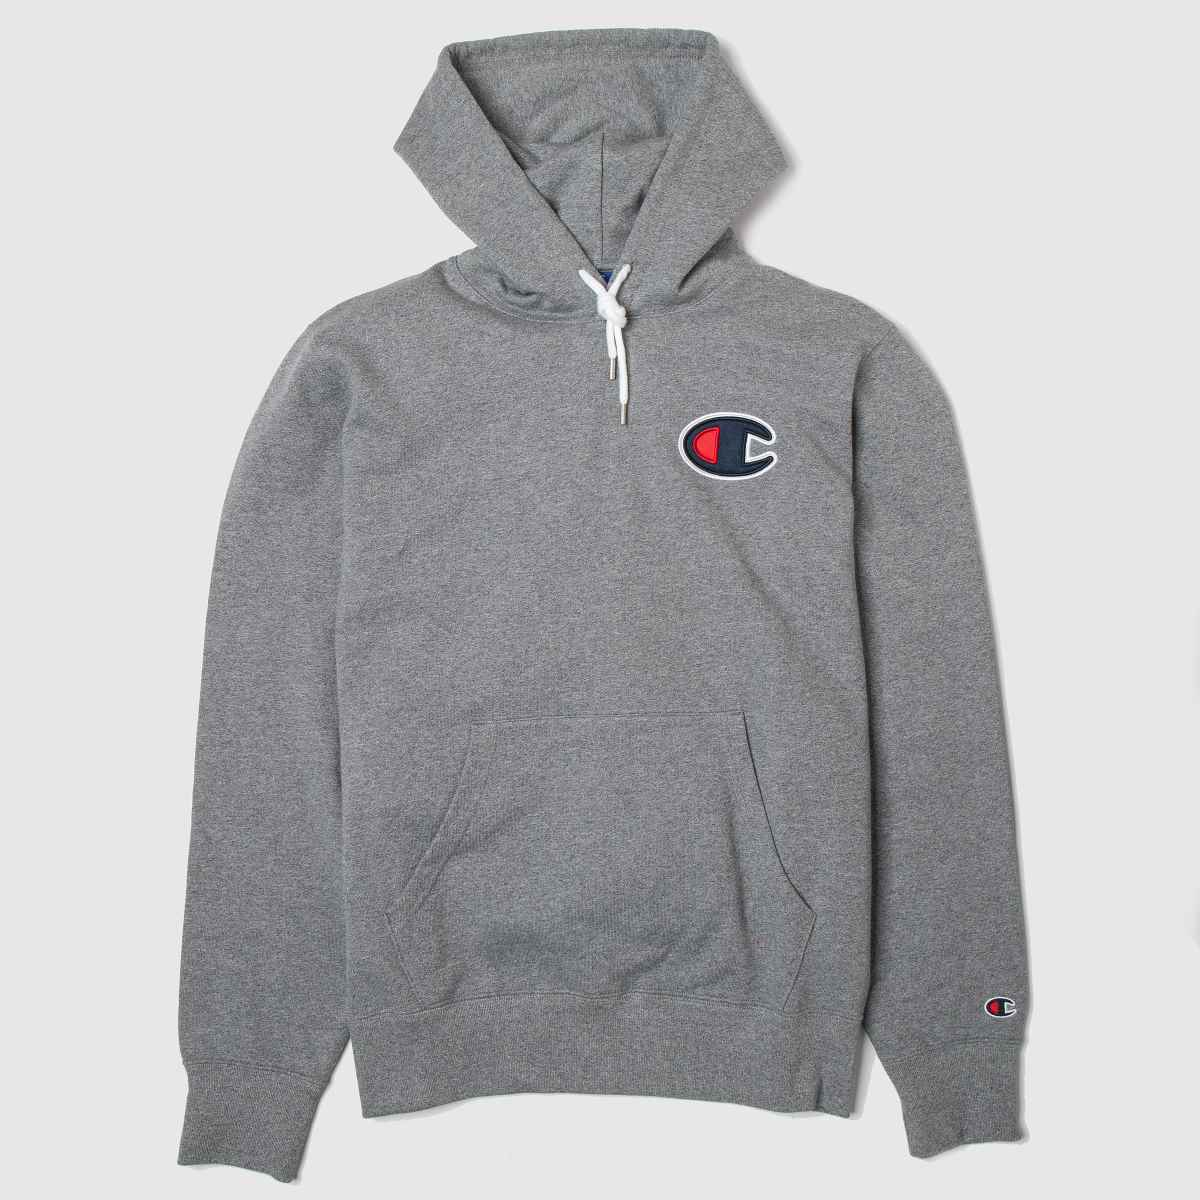 Champion Hodded Sweatshirt